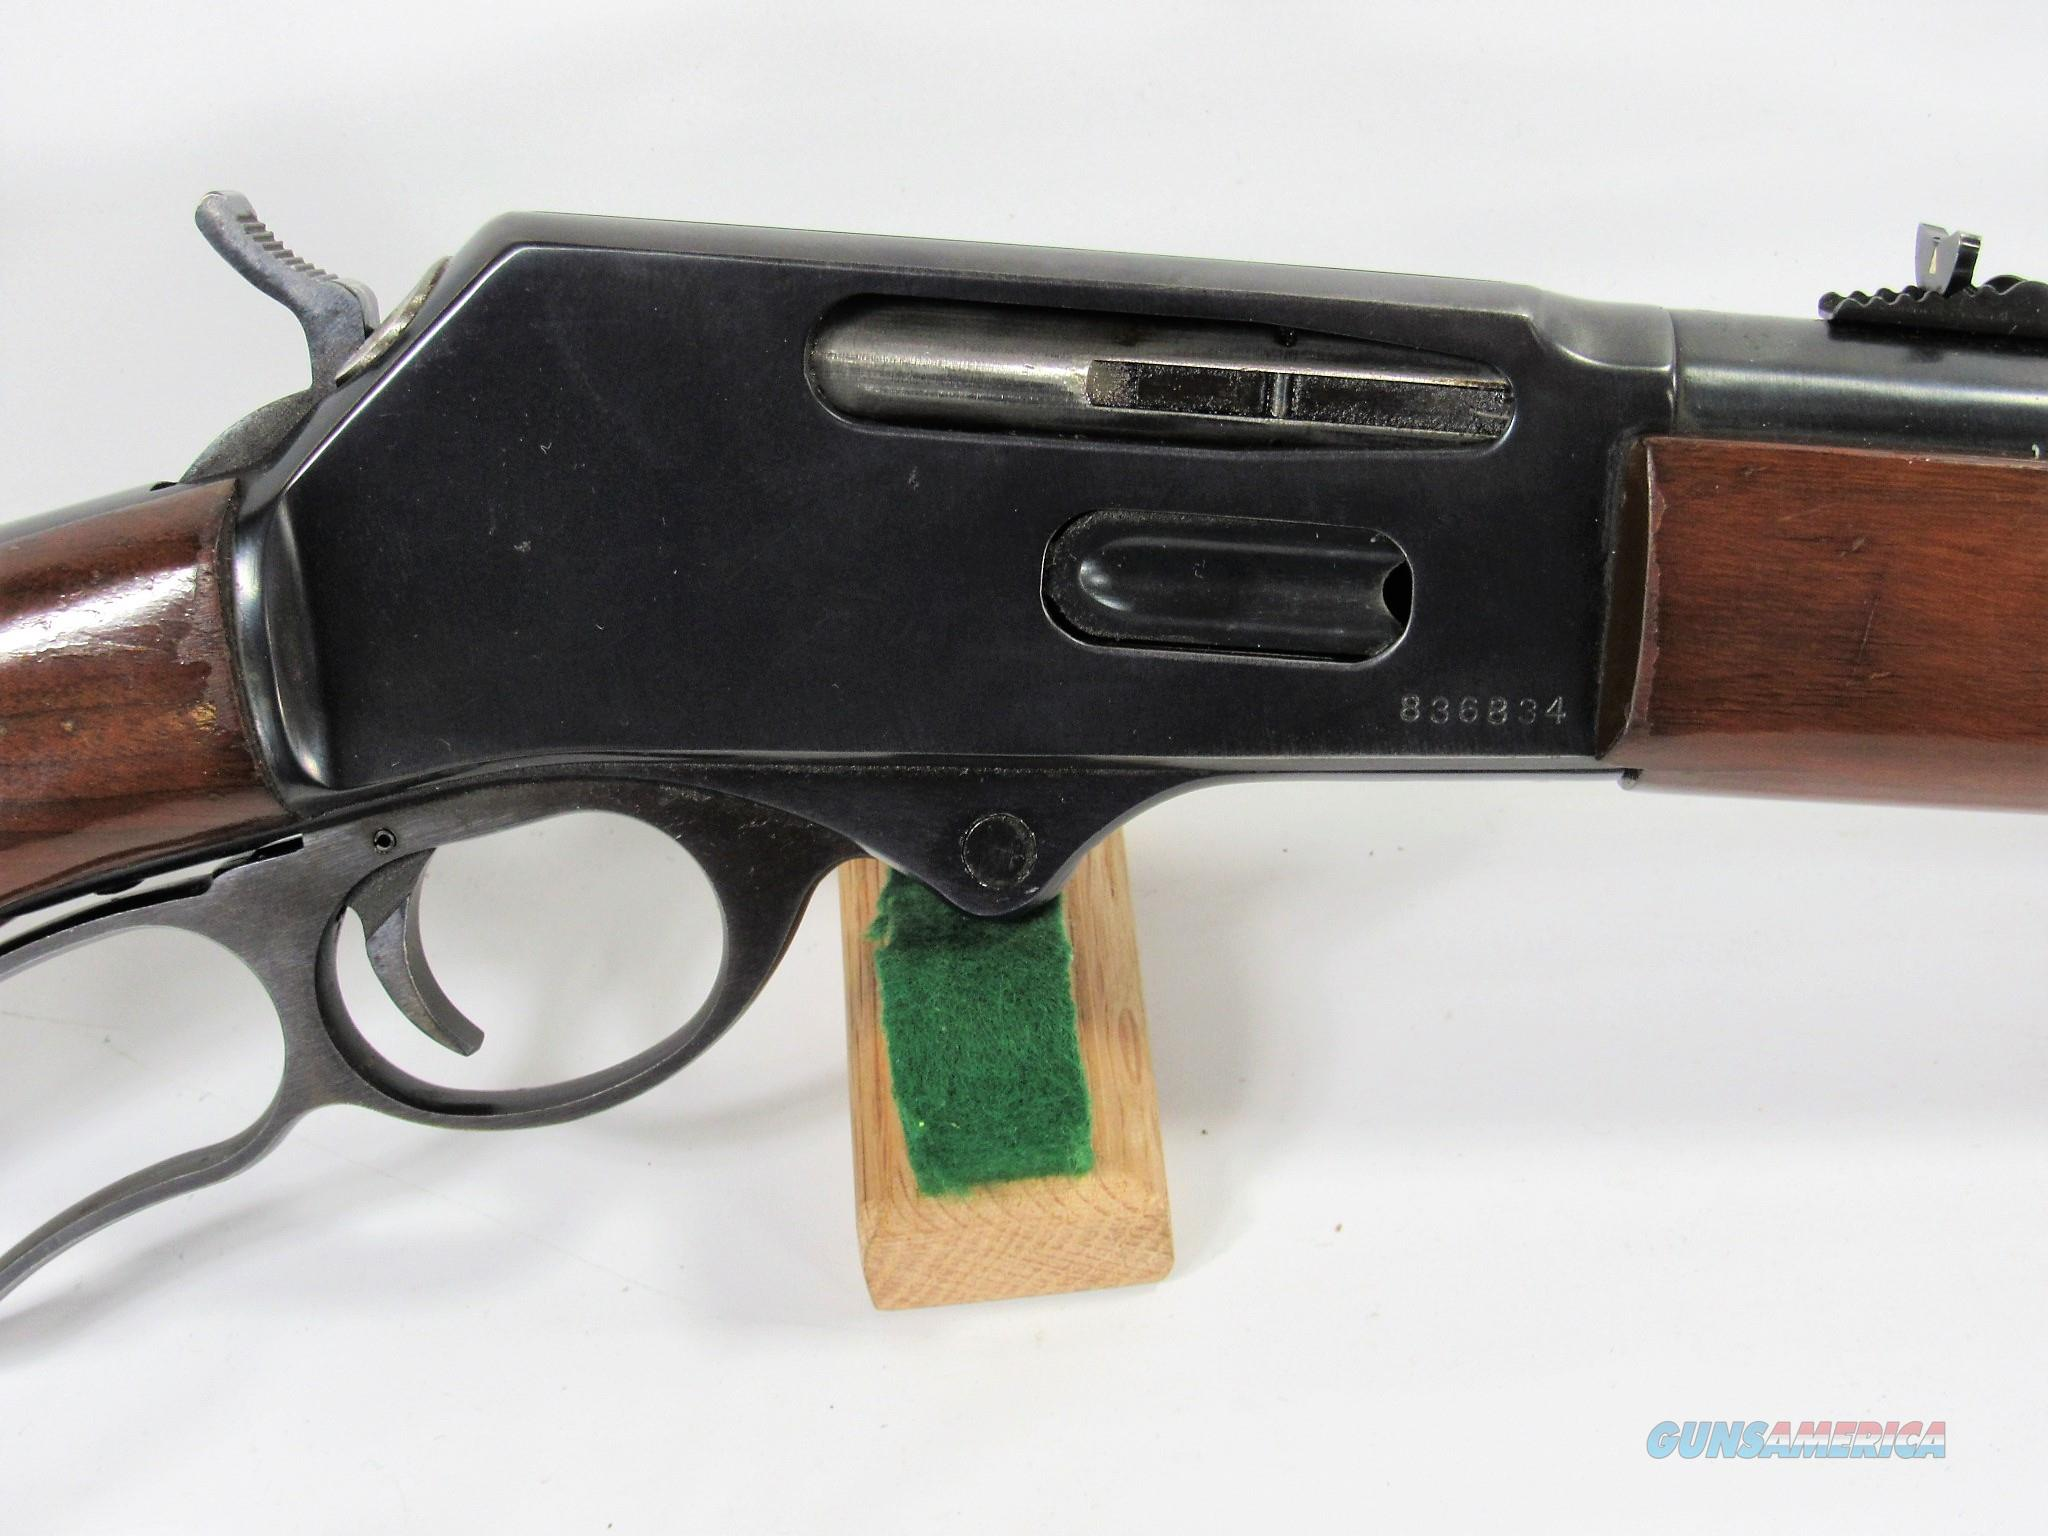 94Y MOSSBERG 472 PCA LEVER 30-30  Guns > Rifles > Mossberg Rifles > Lever Action